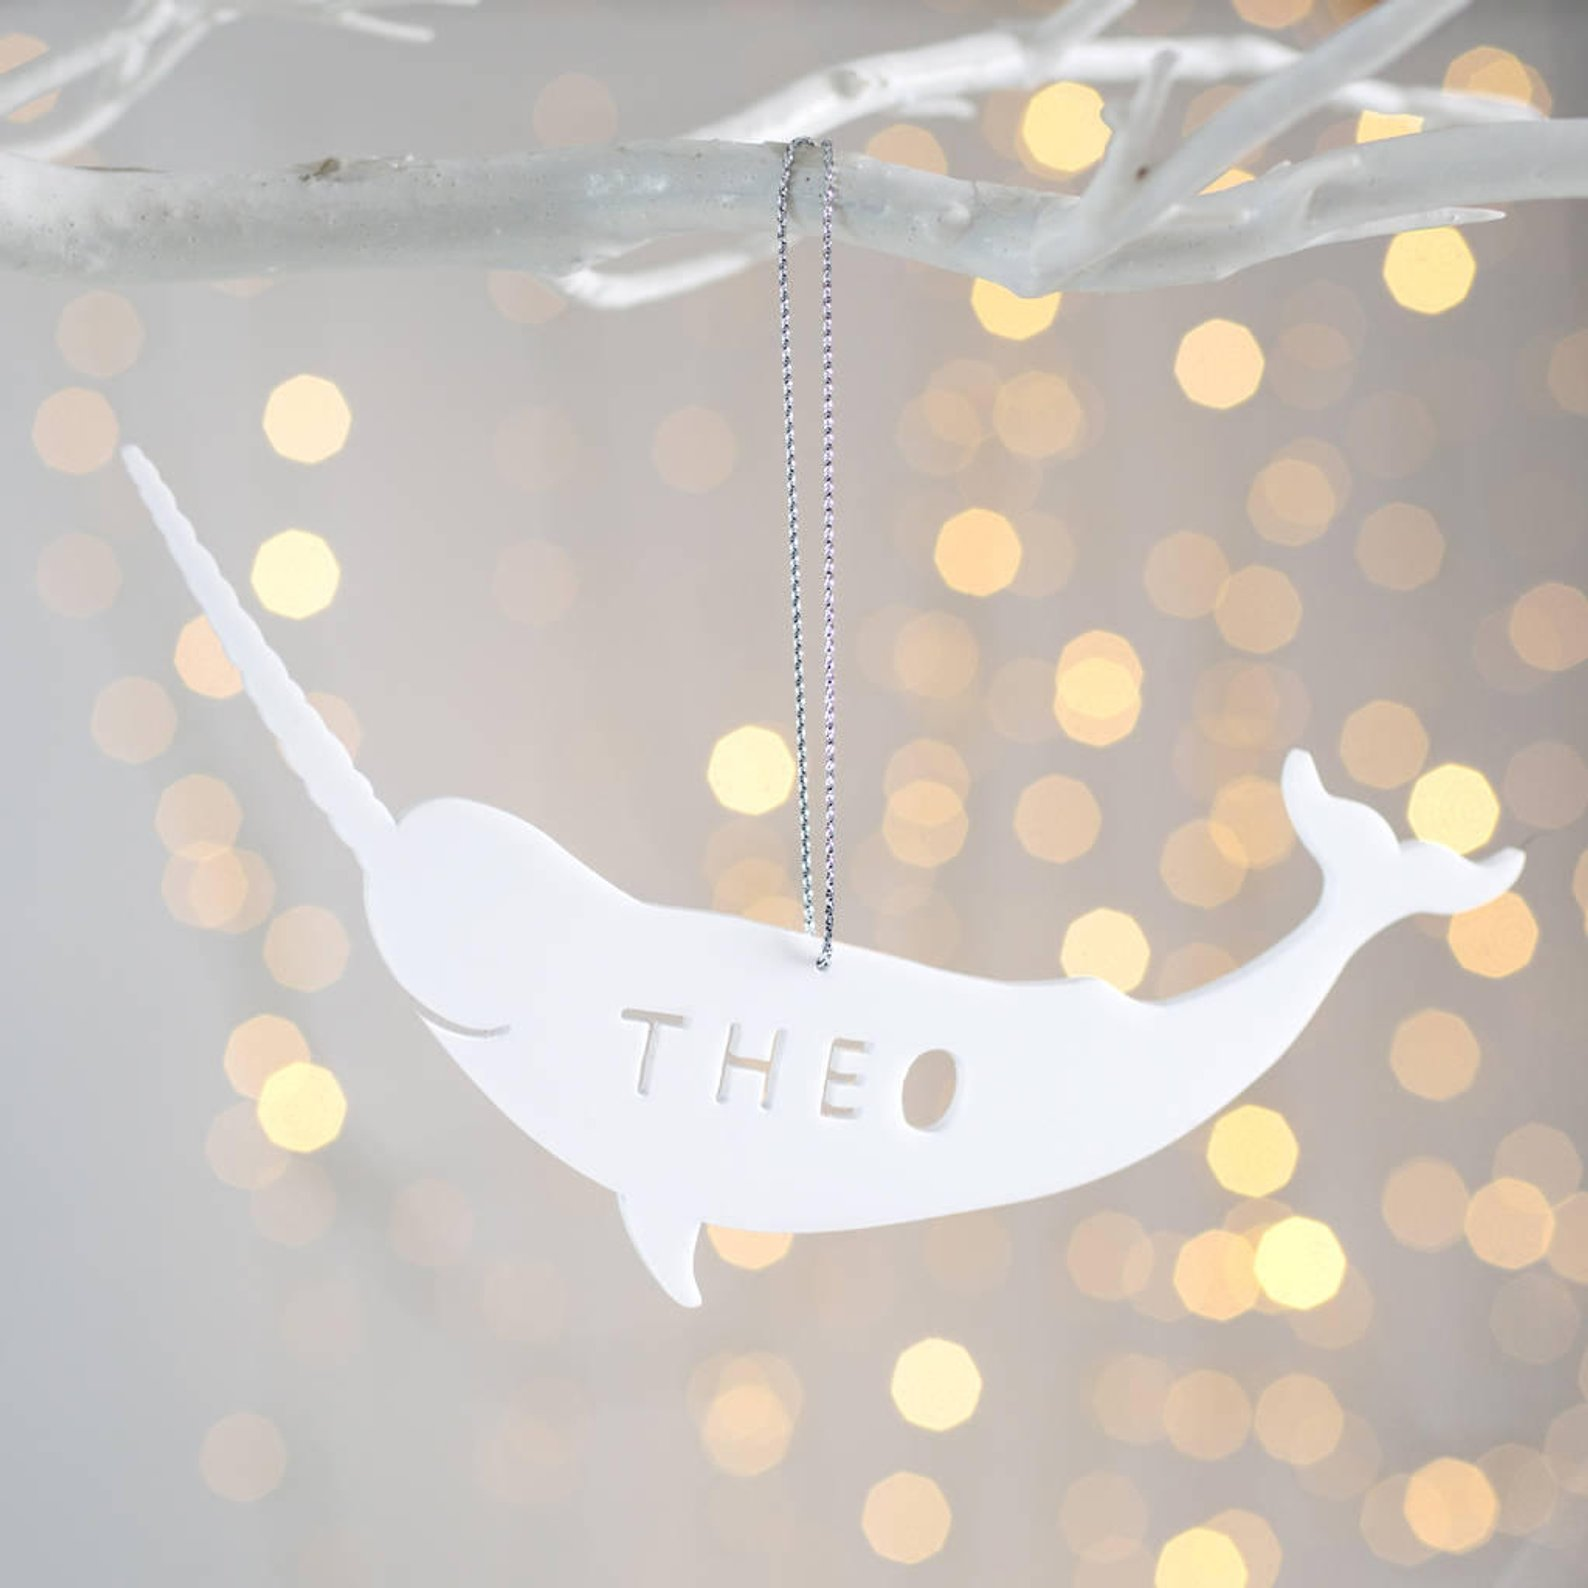 Personalized Narwhal Christmas Decoration By Twenty Seven UK